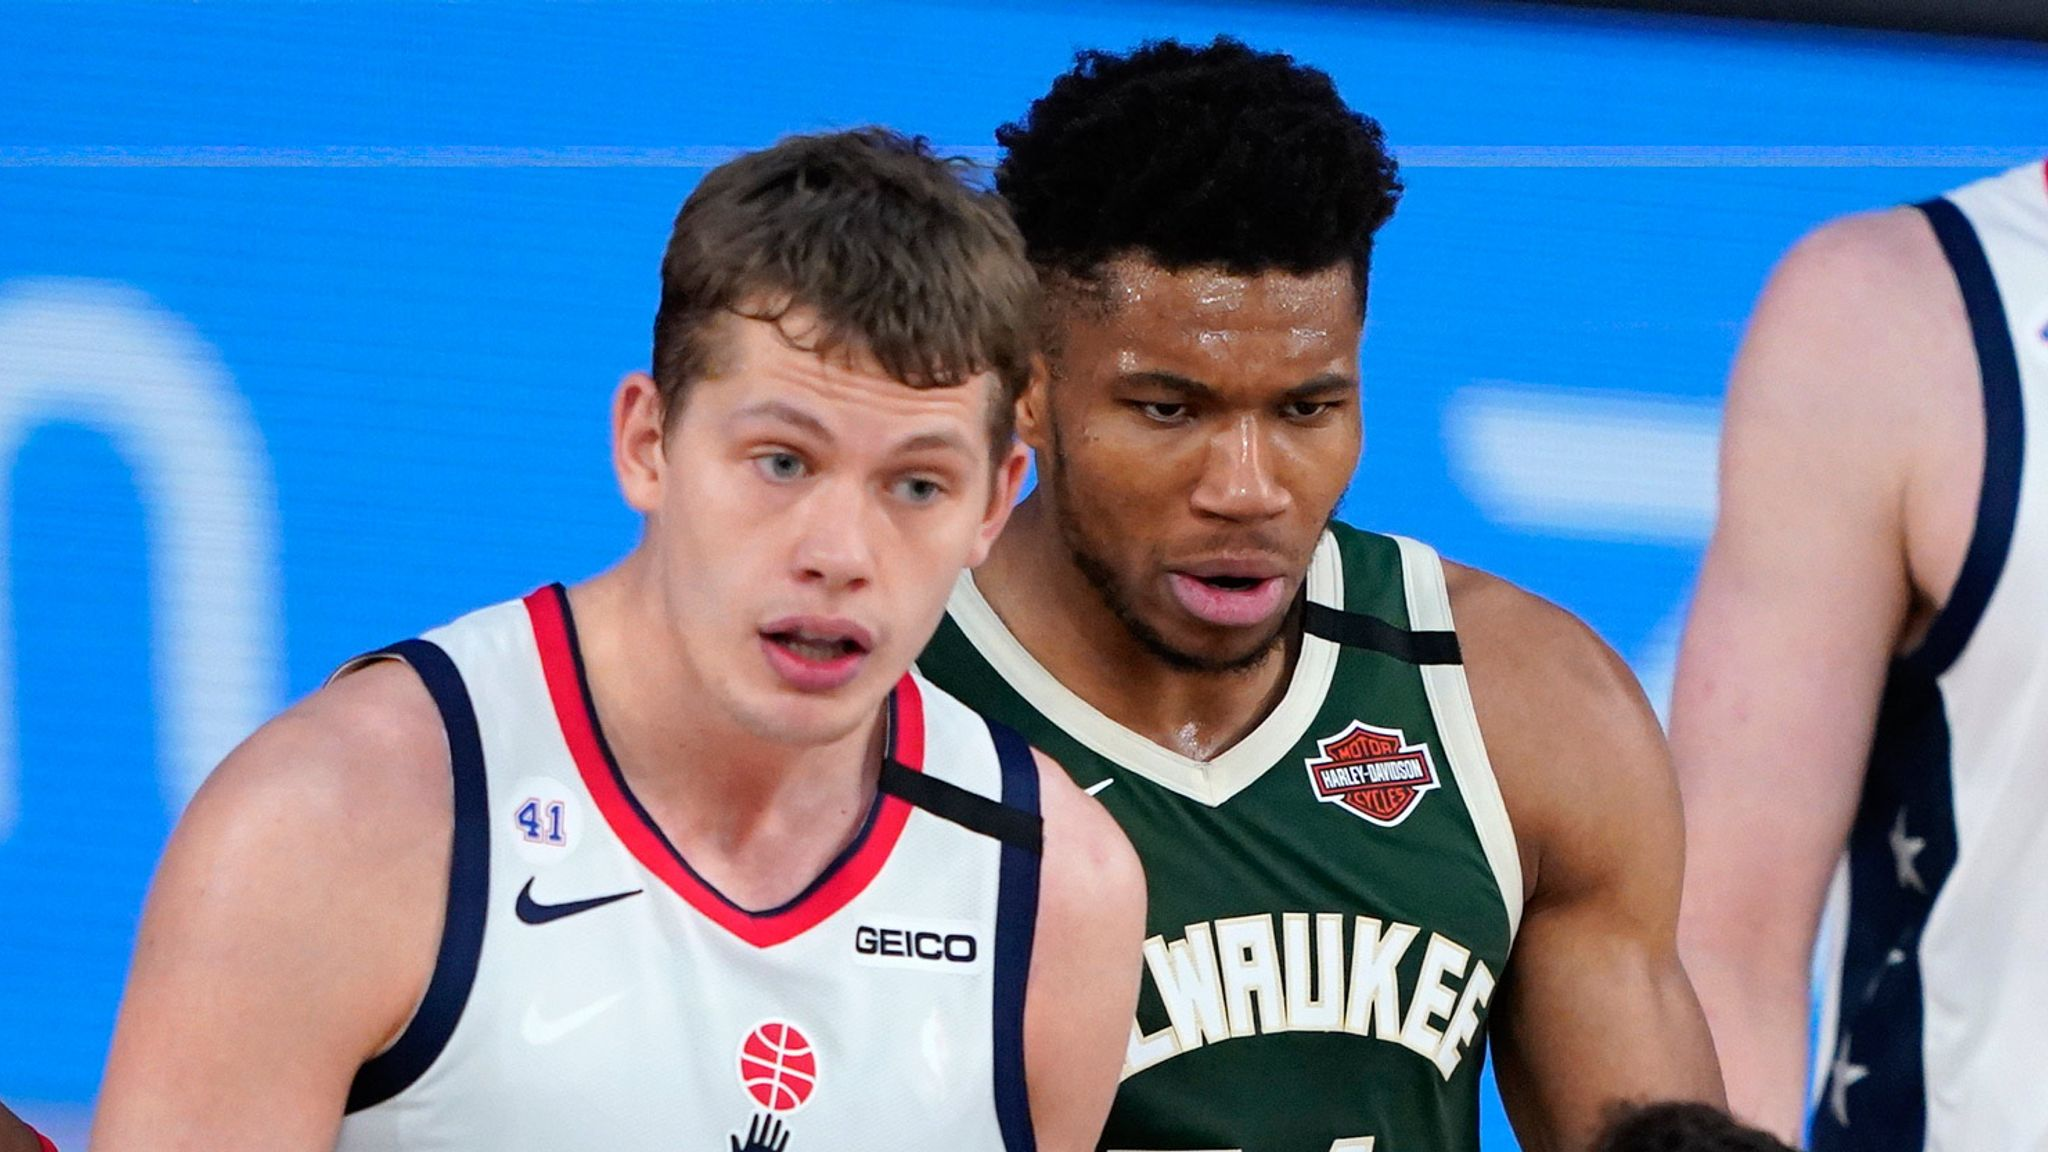 Mo Wagner and Giannis Antetokounmpo are reprimanded by the referee